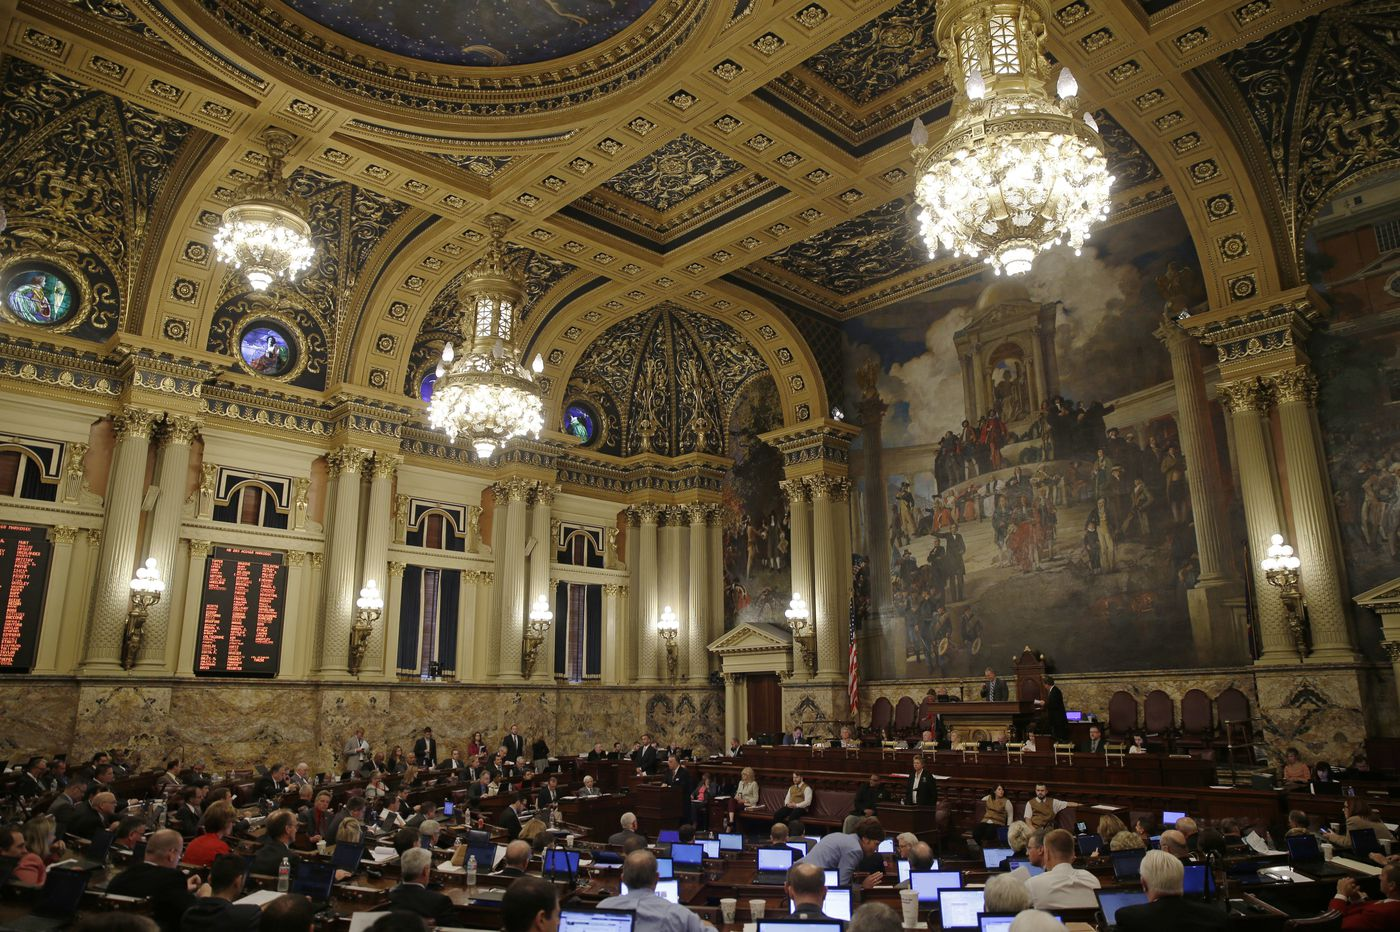 Of Pa.'s 'new' legislature, its new dress code, its new committee, its (likely) same old ways | John Baer